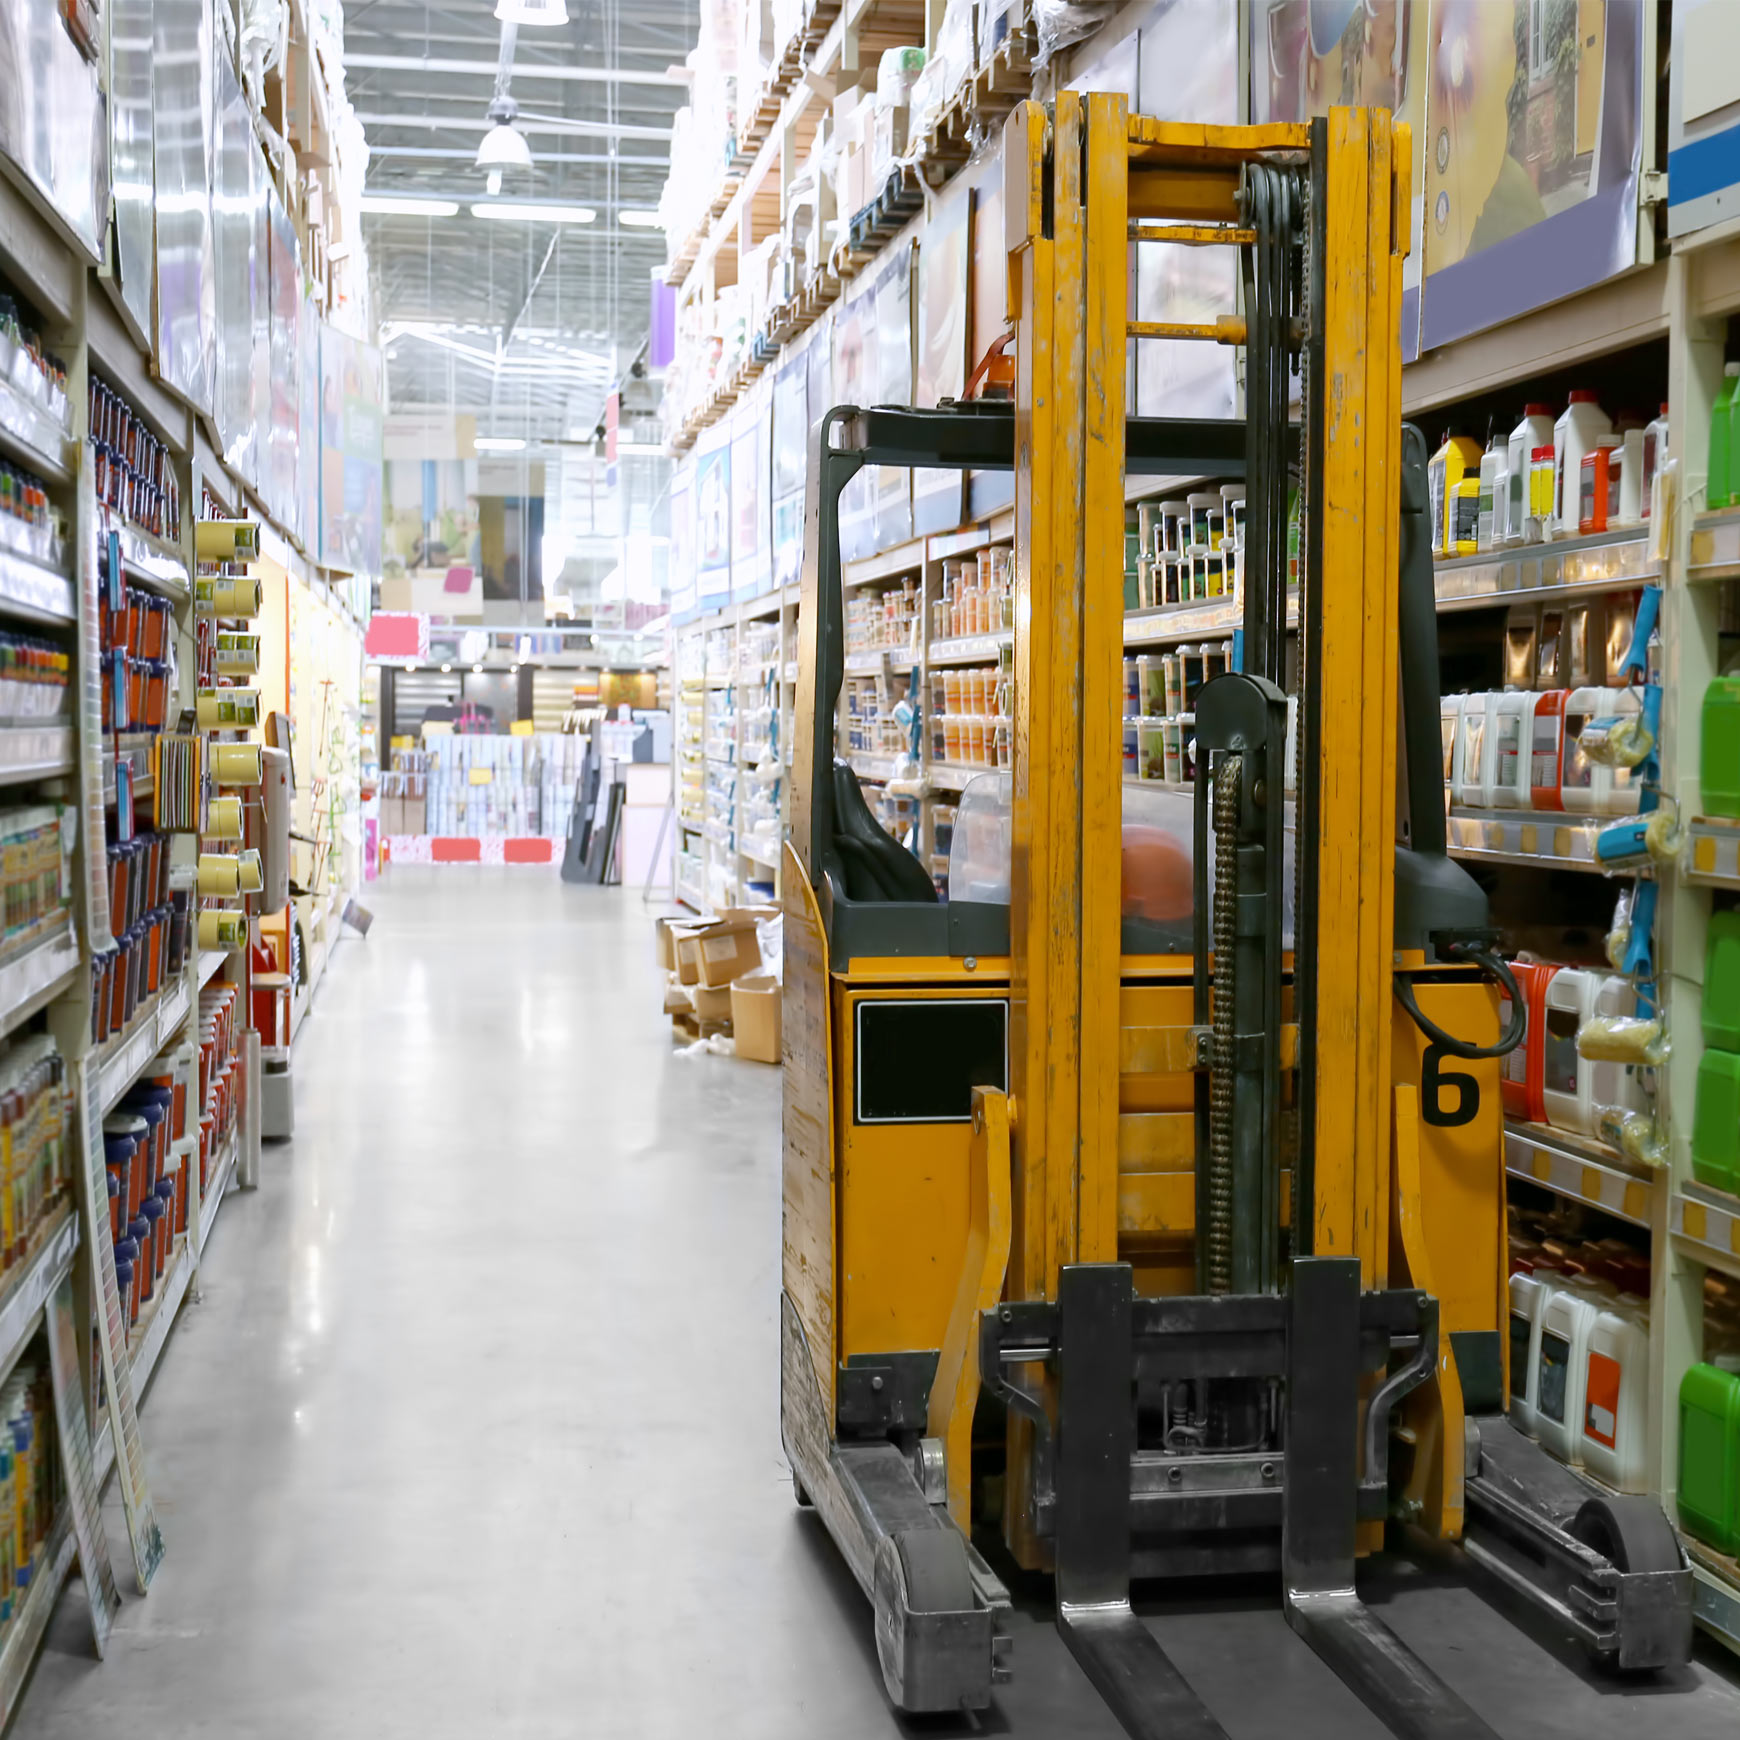 forklift in an aisle in a shop or warehouse